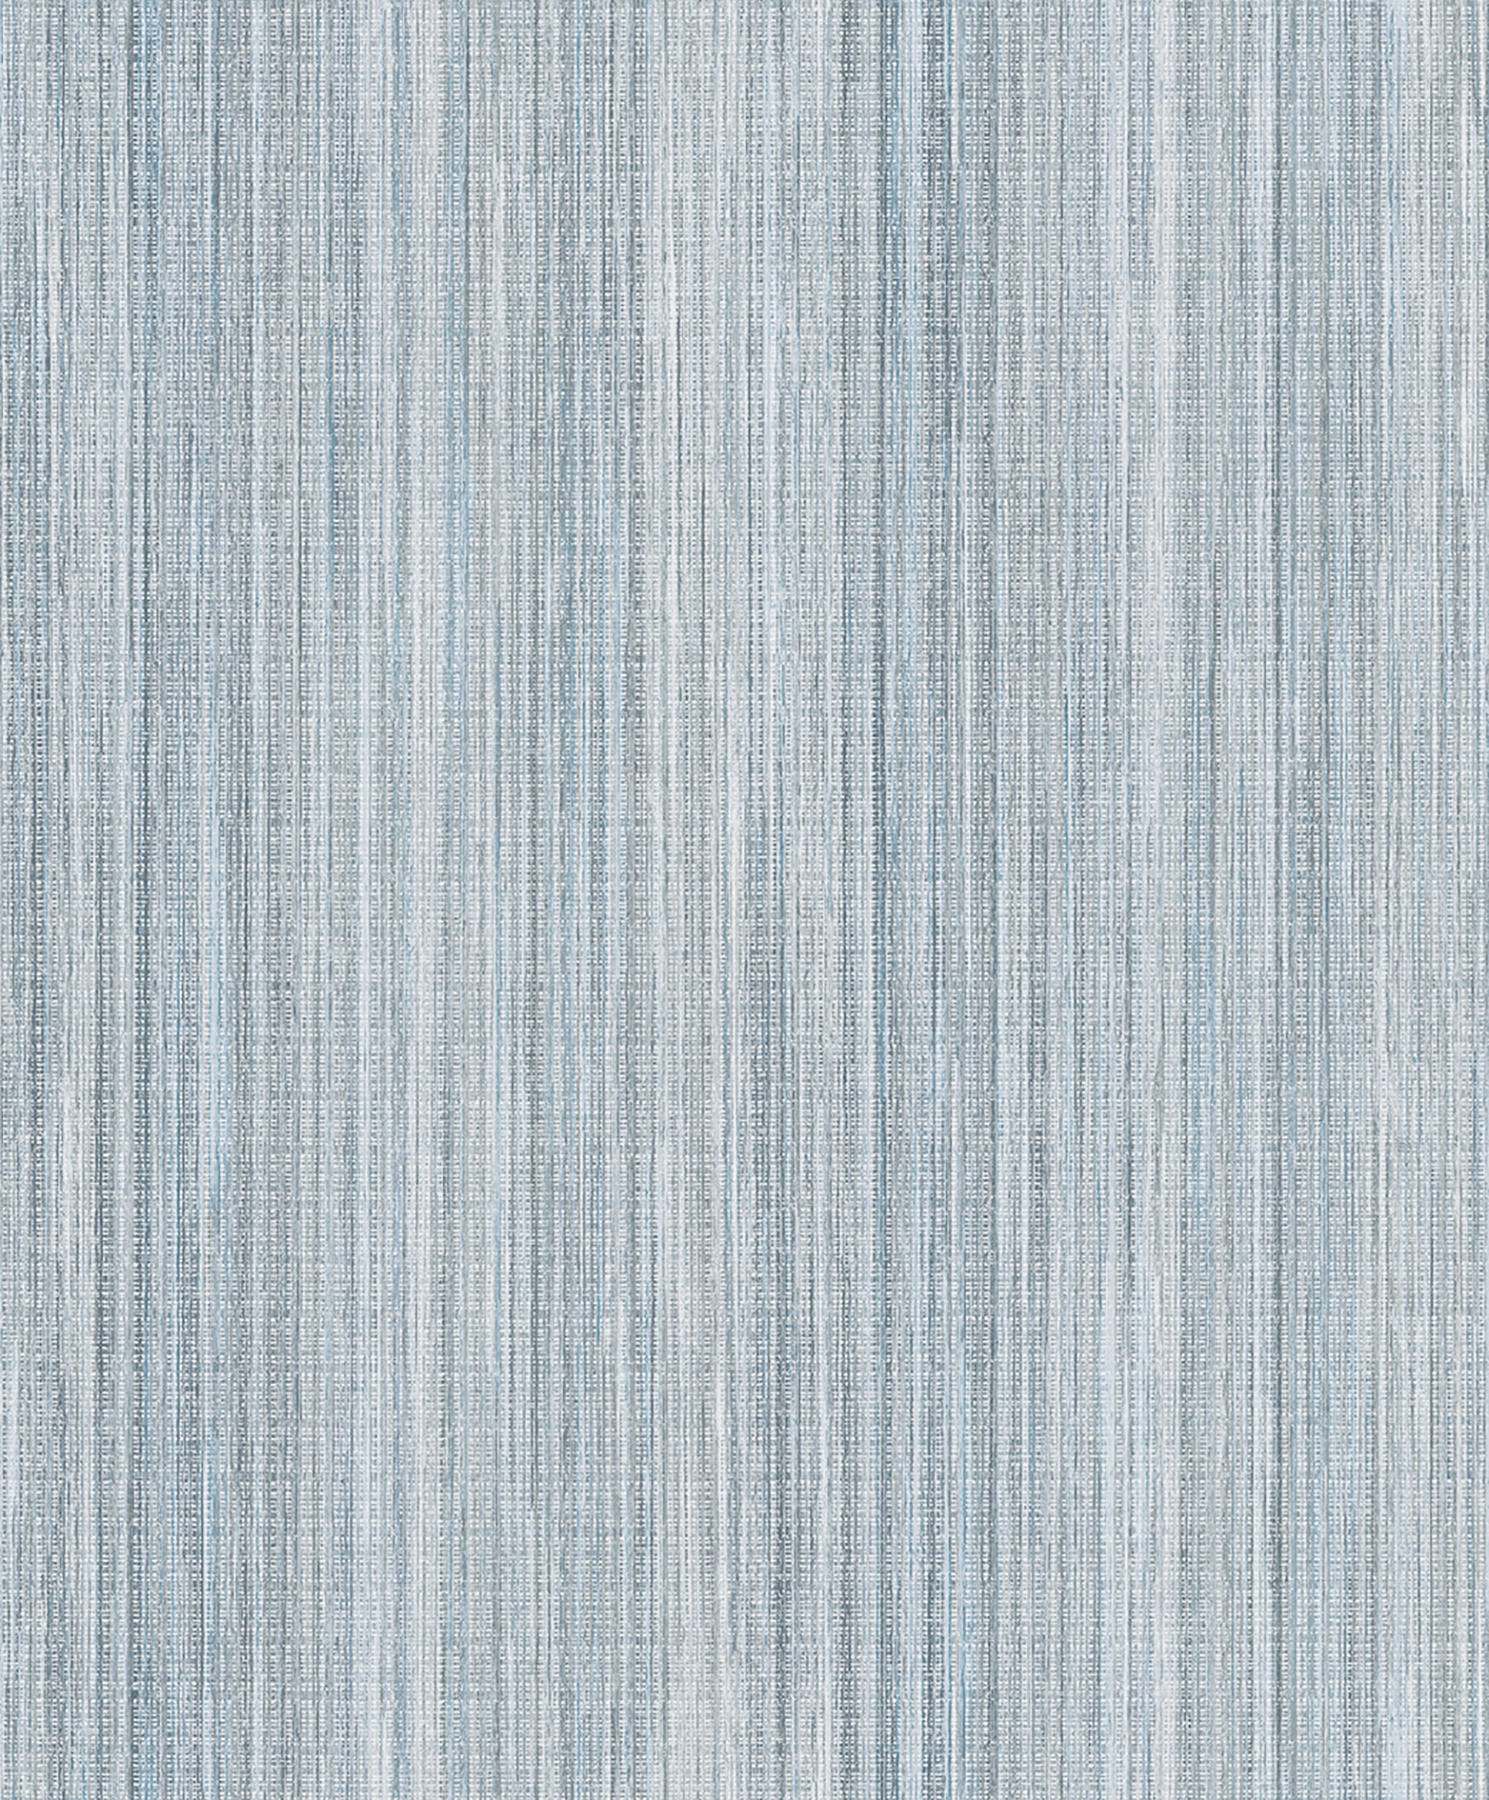 Picture of Audrey Teal Texture Wallpaper